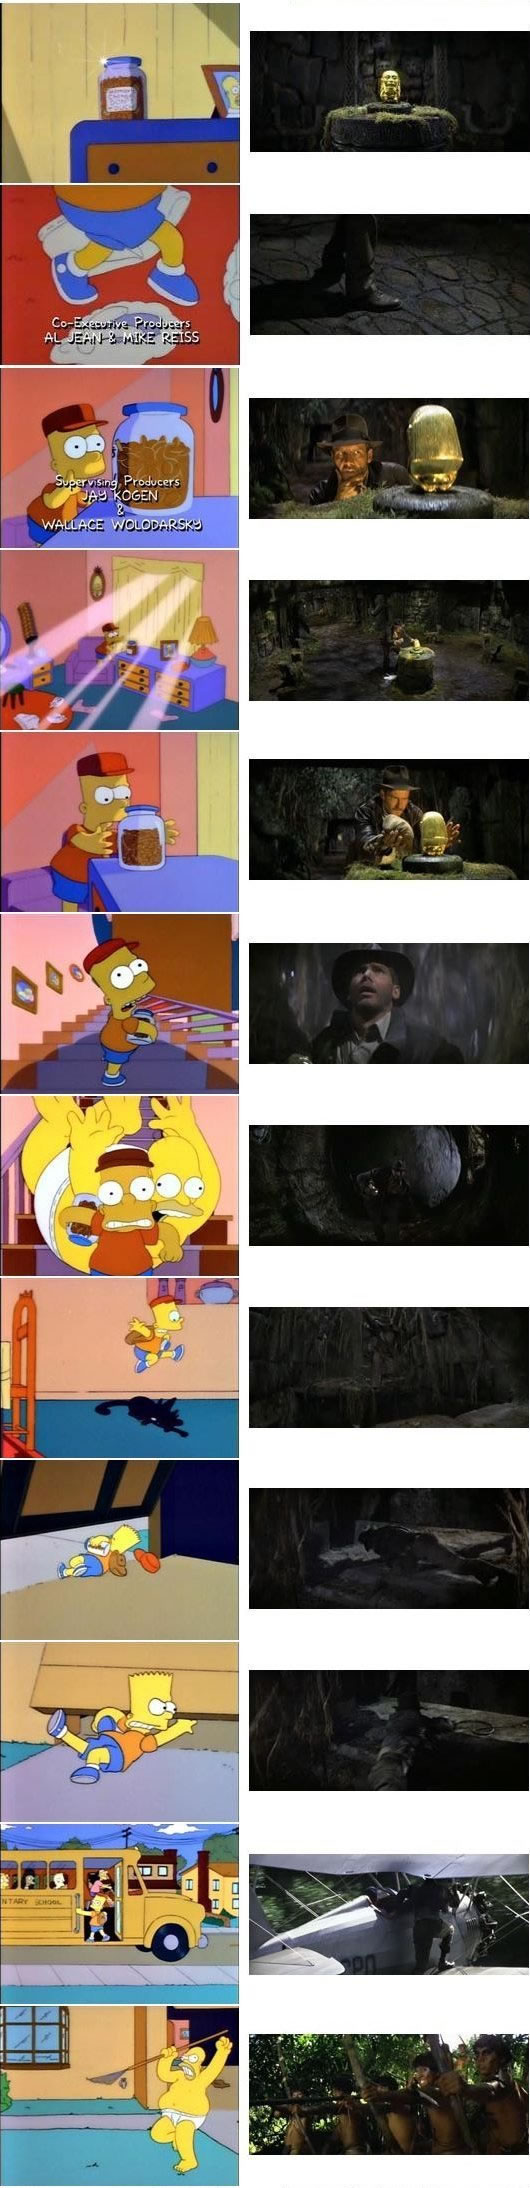 "Stills from the Simpsons' homage to ""Raiders of the Lost Ark"""